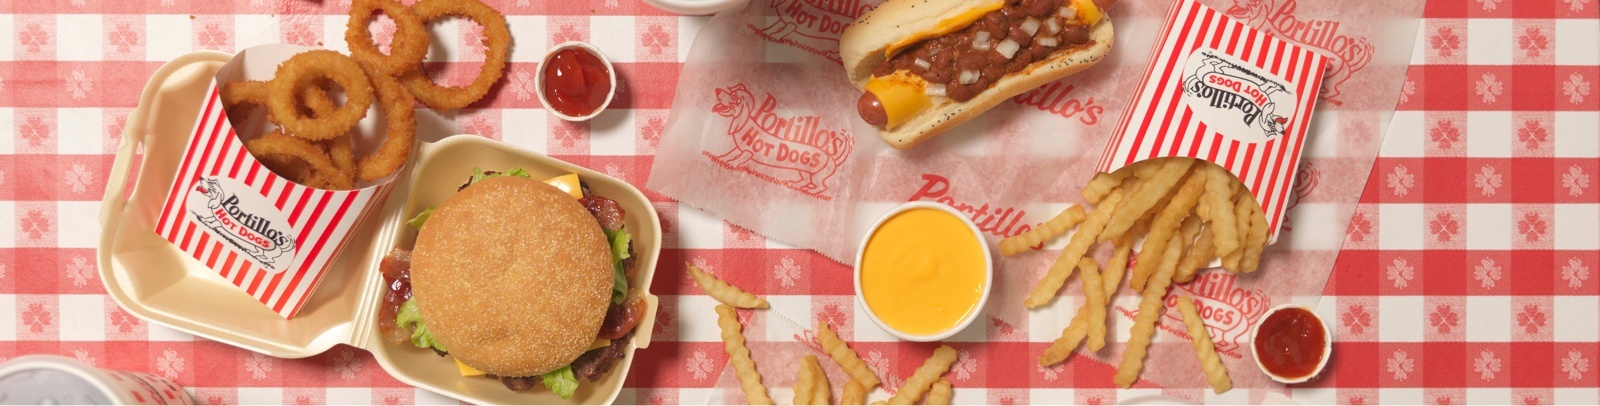 Portillos food